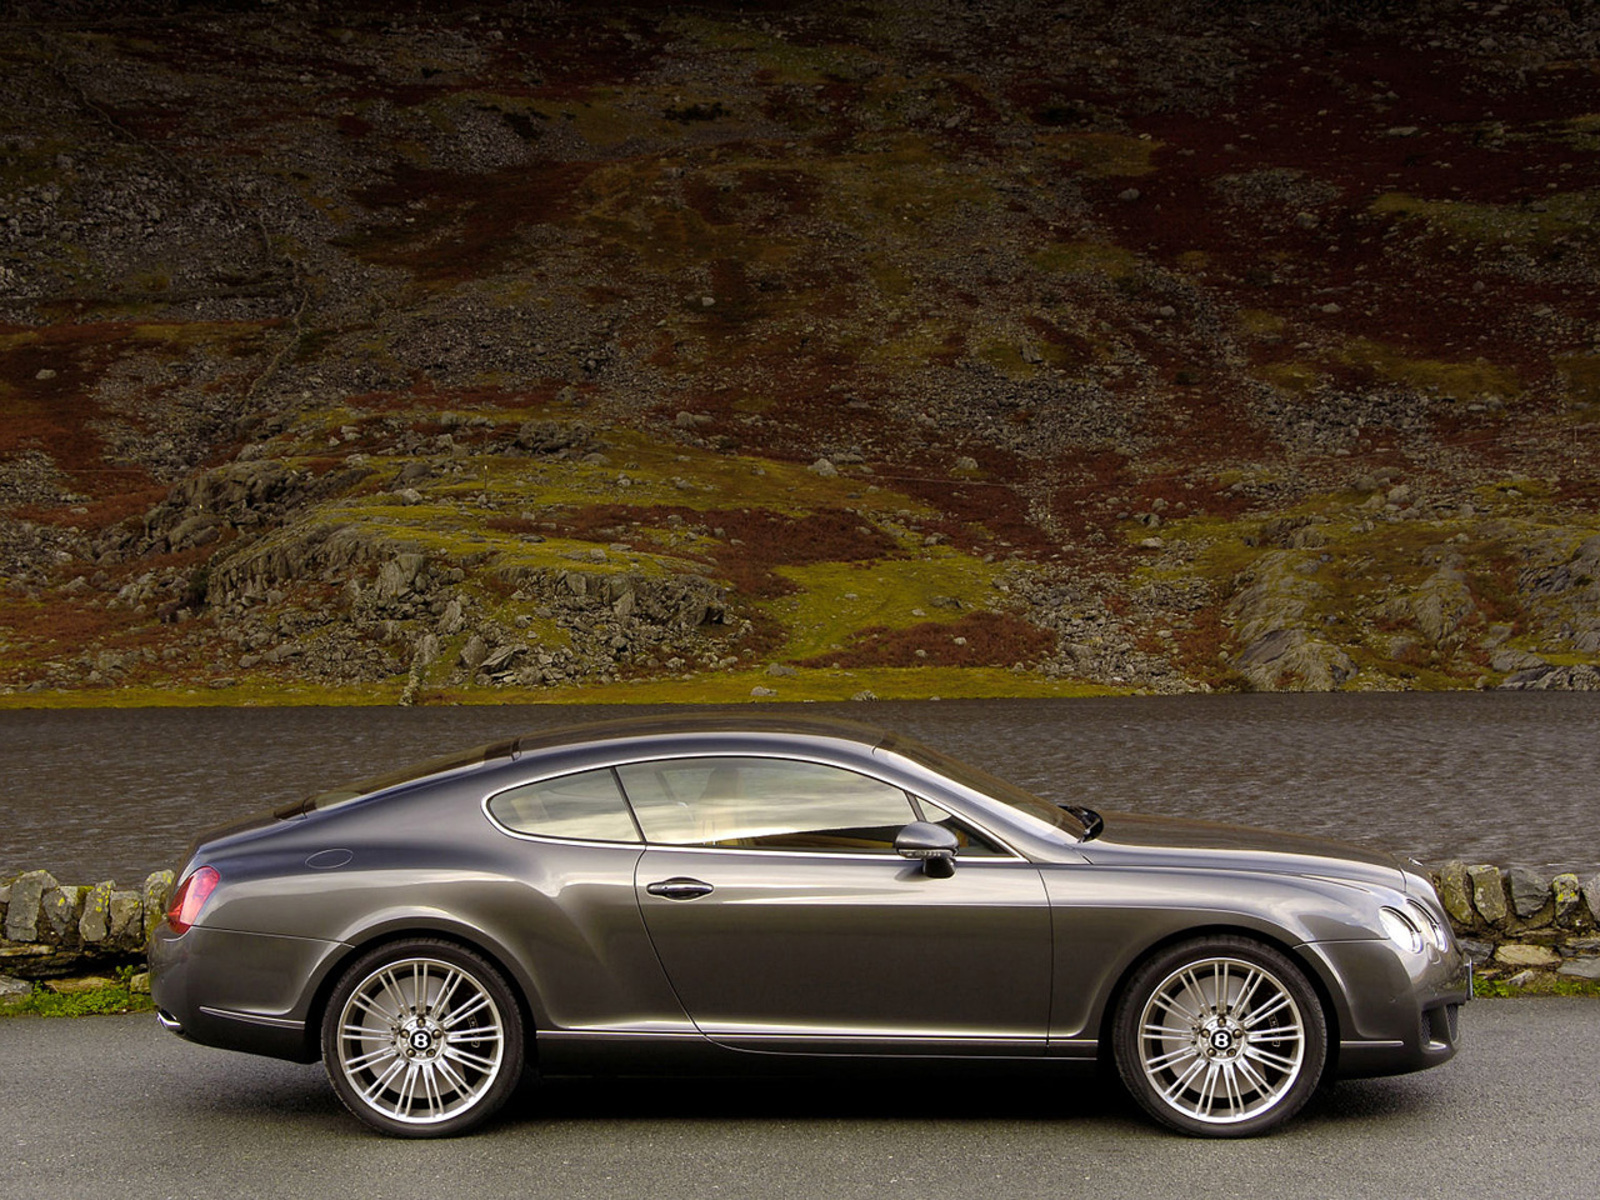 2012 Bentley Continental GT Speed Side (Photo 6 of 6)